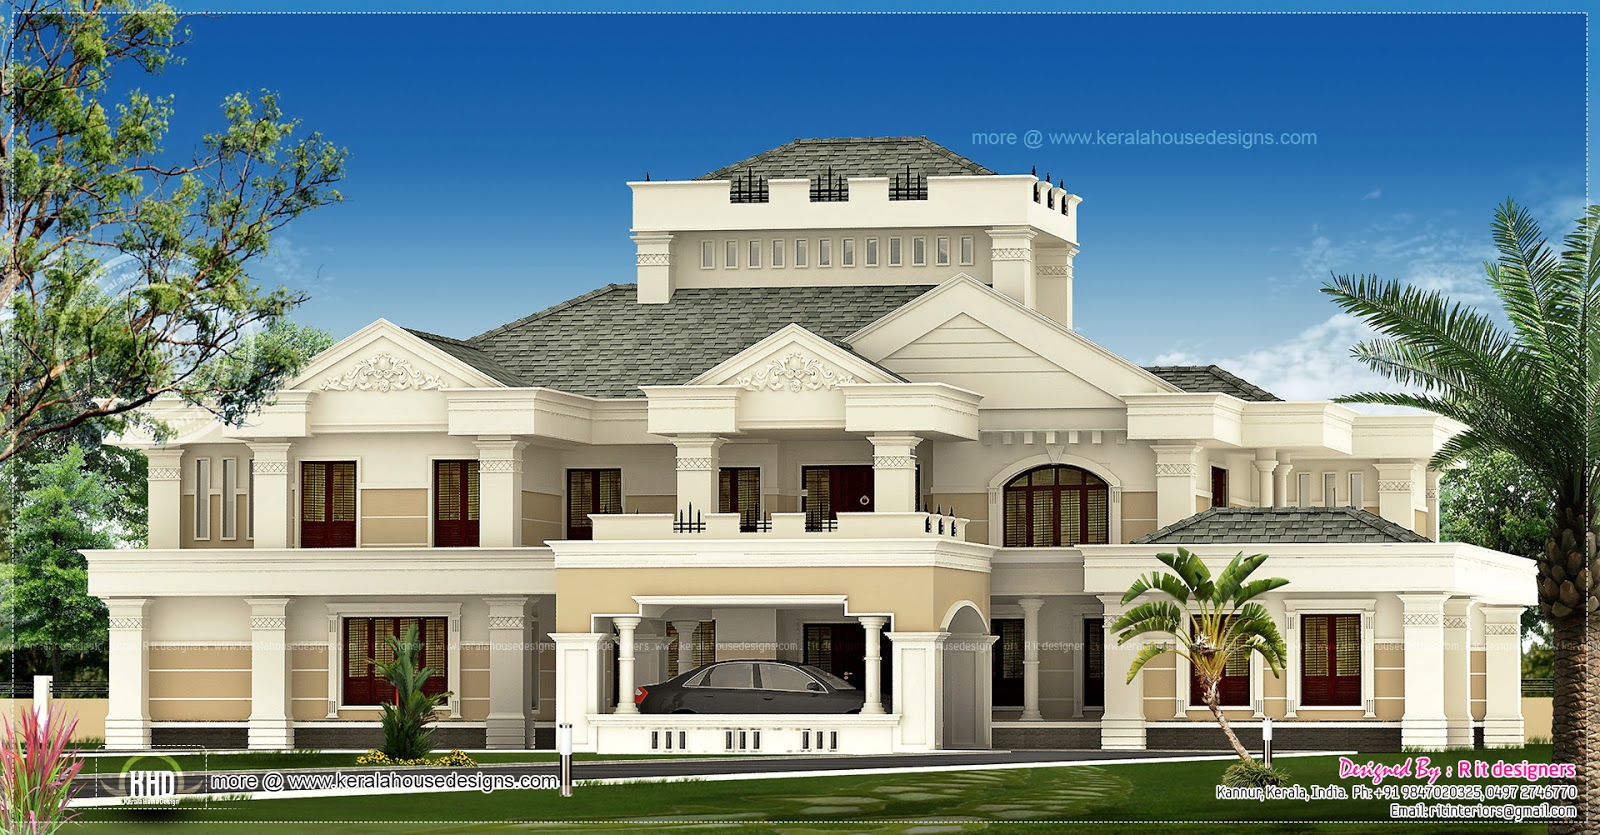 Super luxury kerala house exterior house design plans for Luxury home models